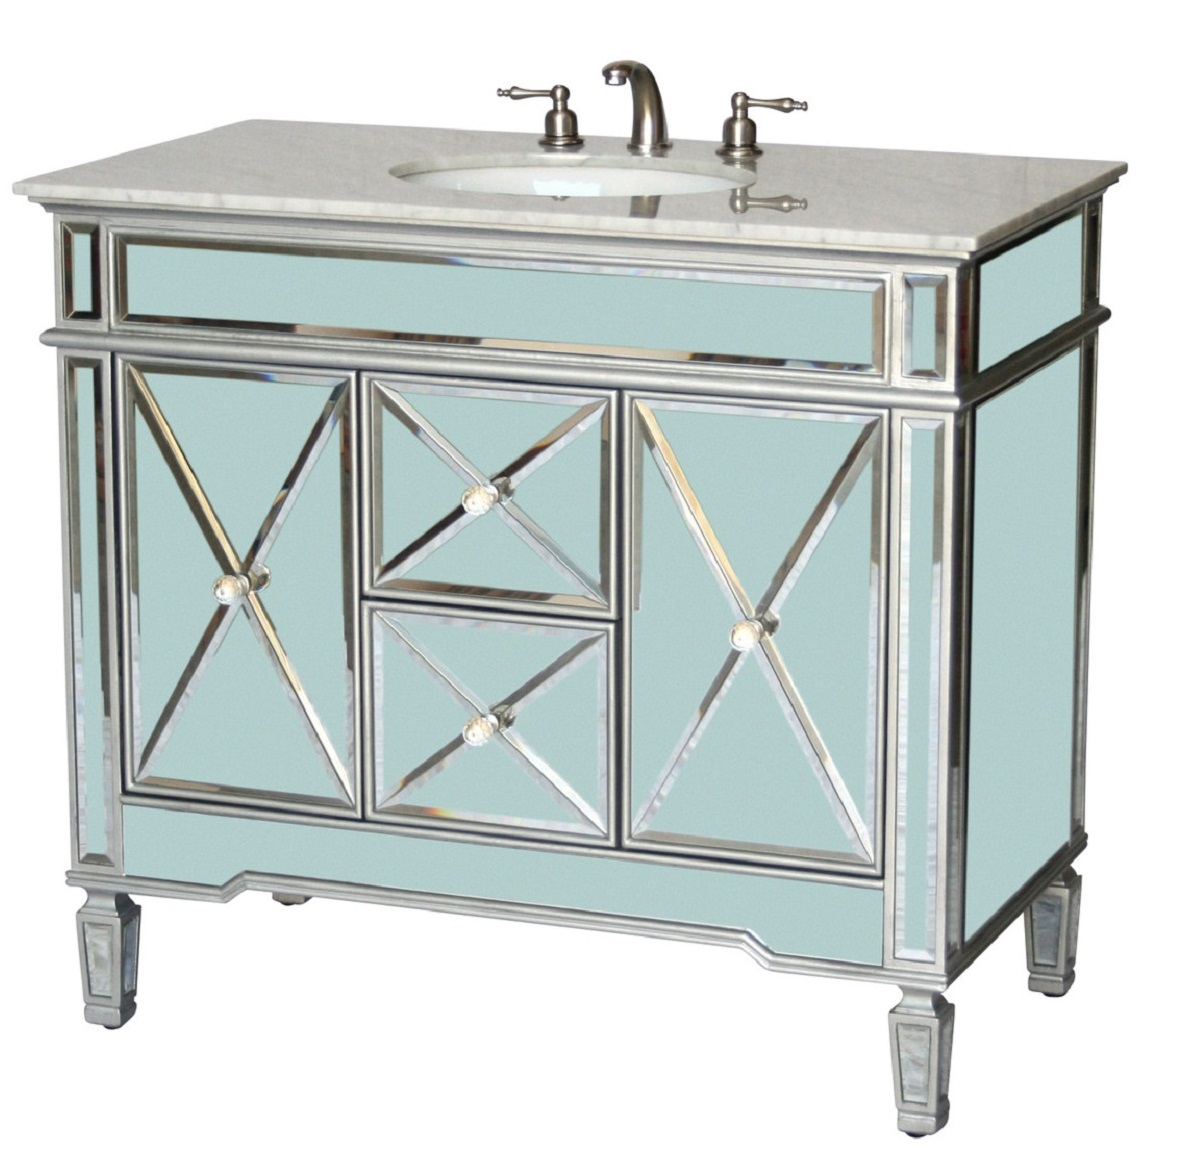 cabinet with bathrooms bathroom vanity sink vanities inch design